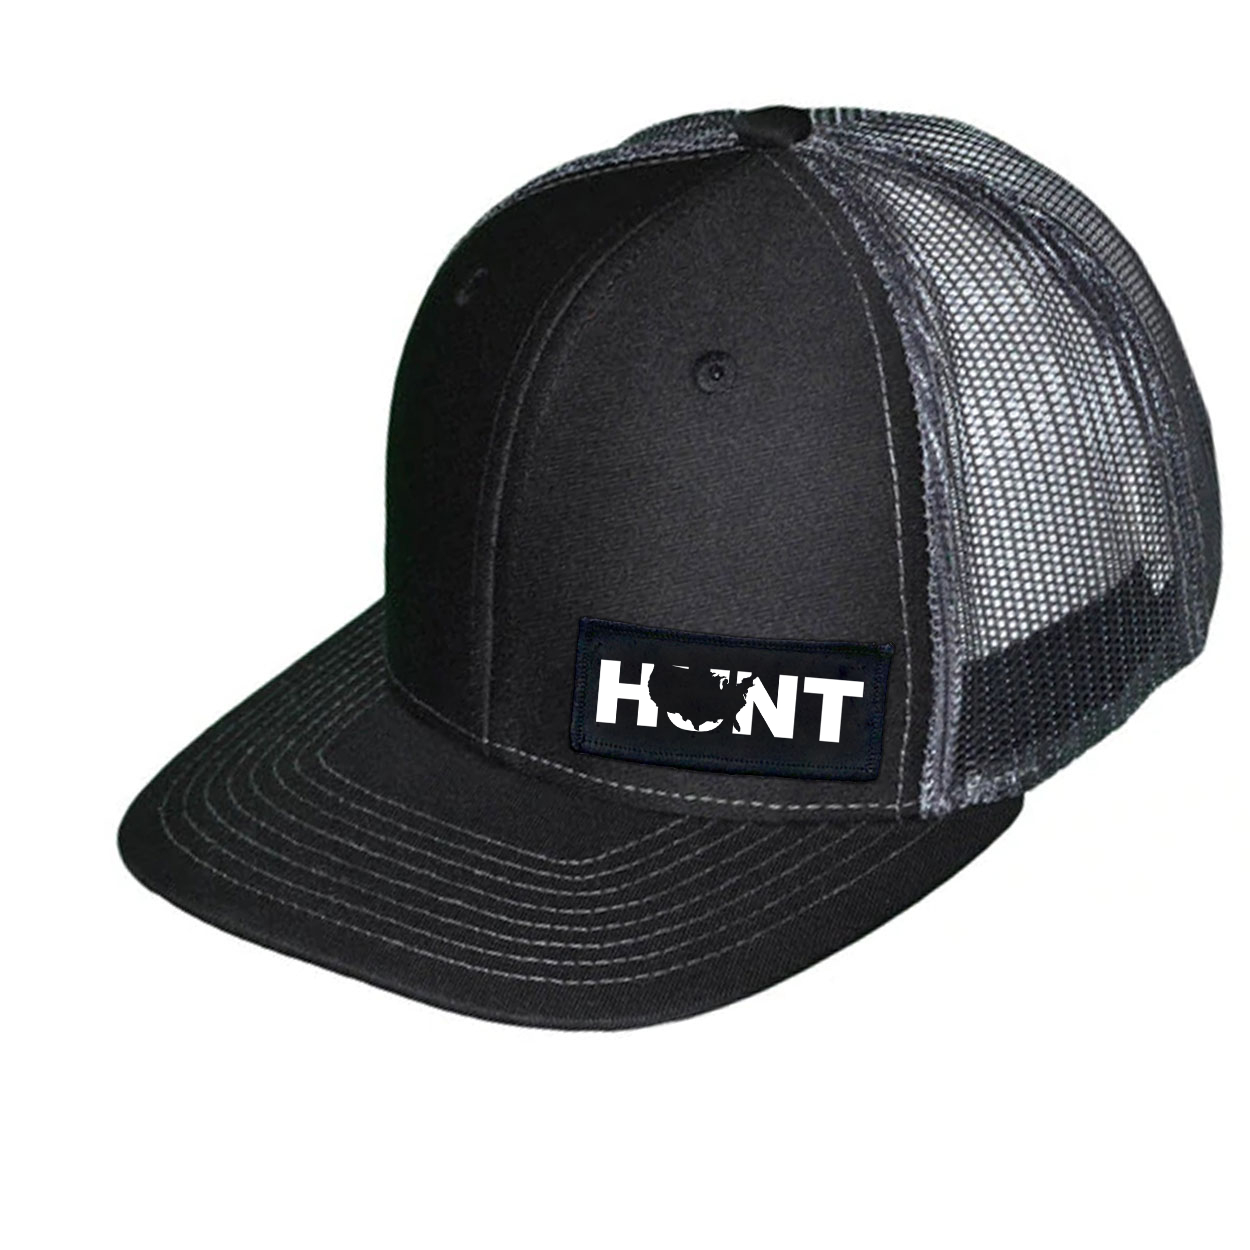 Hunt United States Night Out Woven Patch Snapback Trucker Hat Black/Dark Gray (White Logo)